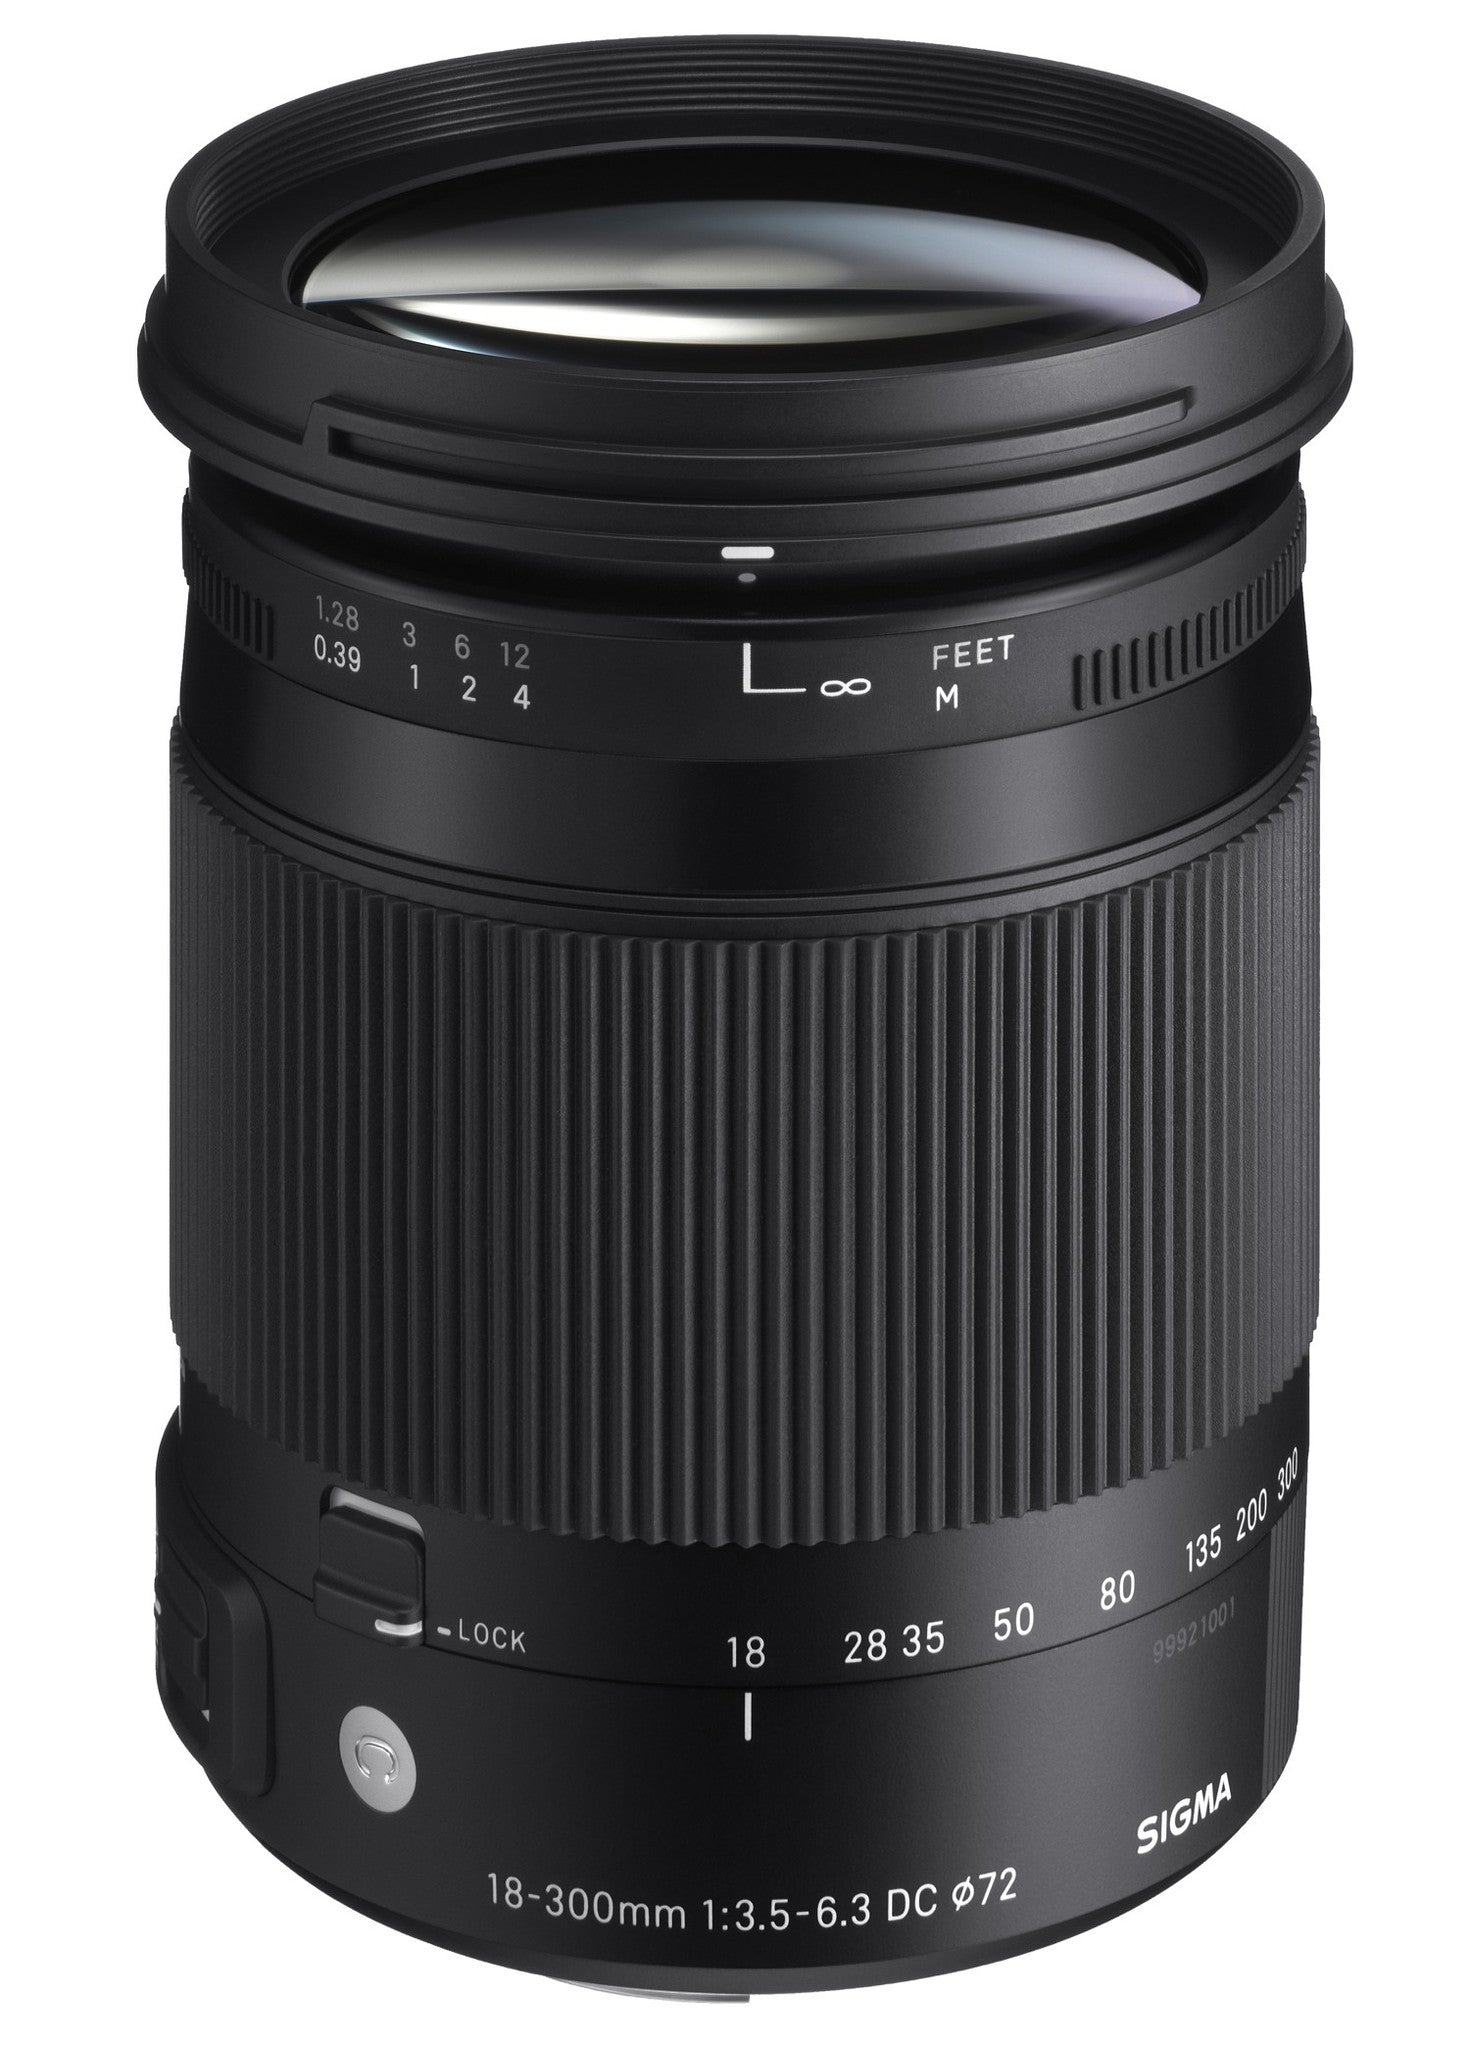 Sigma 18-300mm F3.5-6.3 CONTEMPORARY DC Macro OS HSM (Sony) - Photo-Video - Sigma - Helix Camera